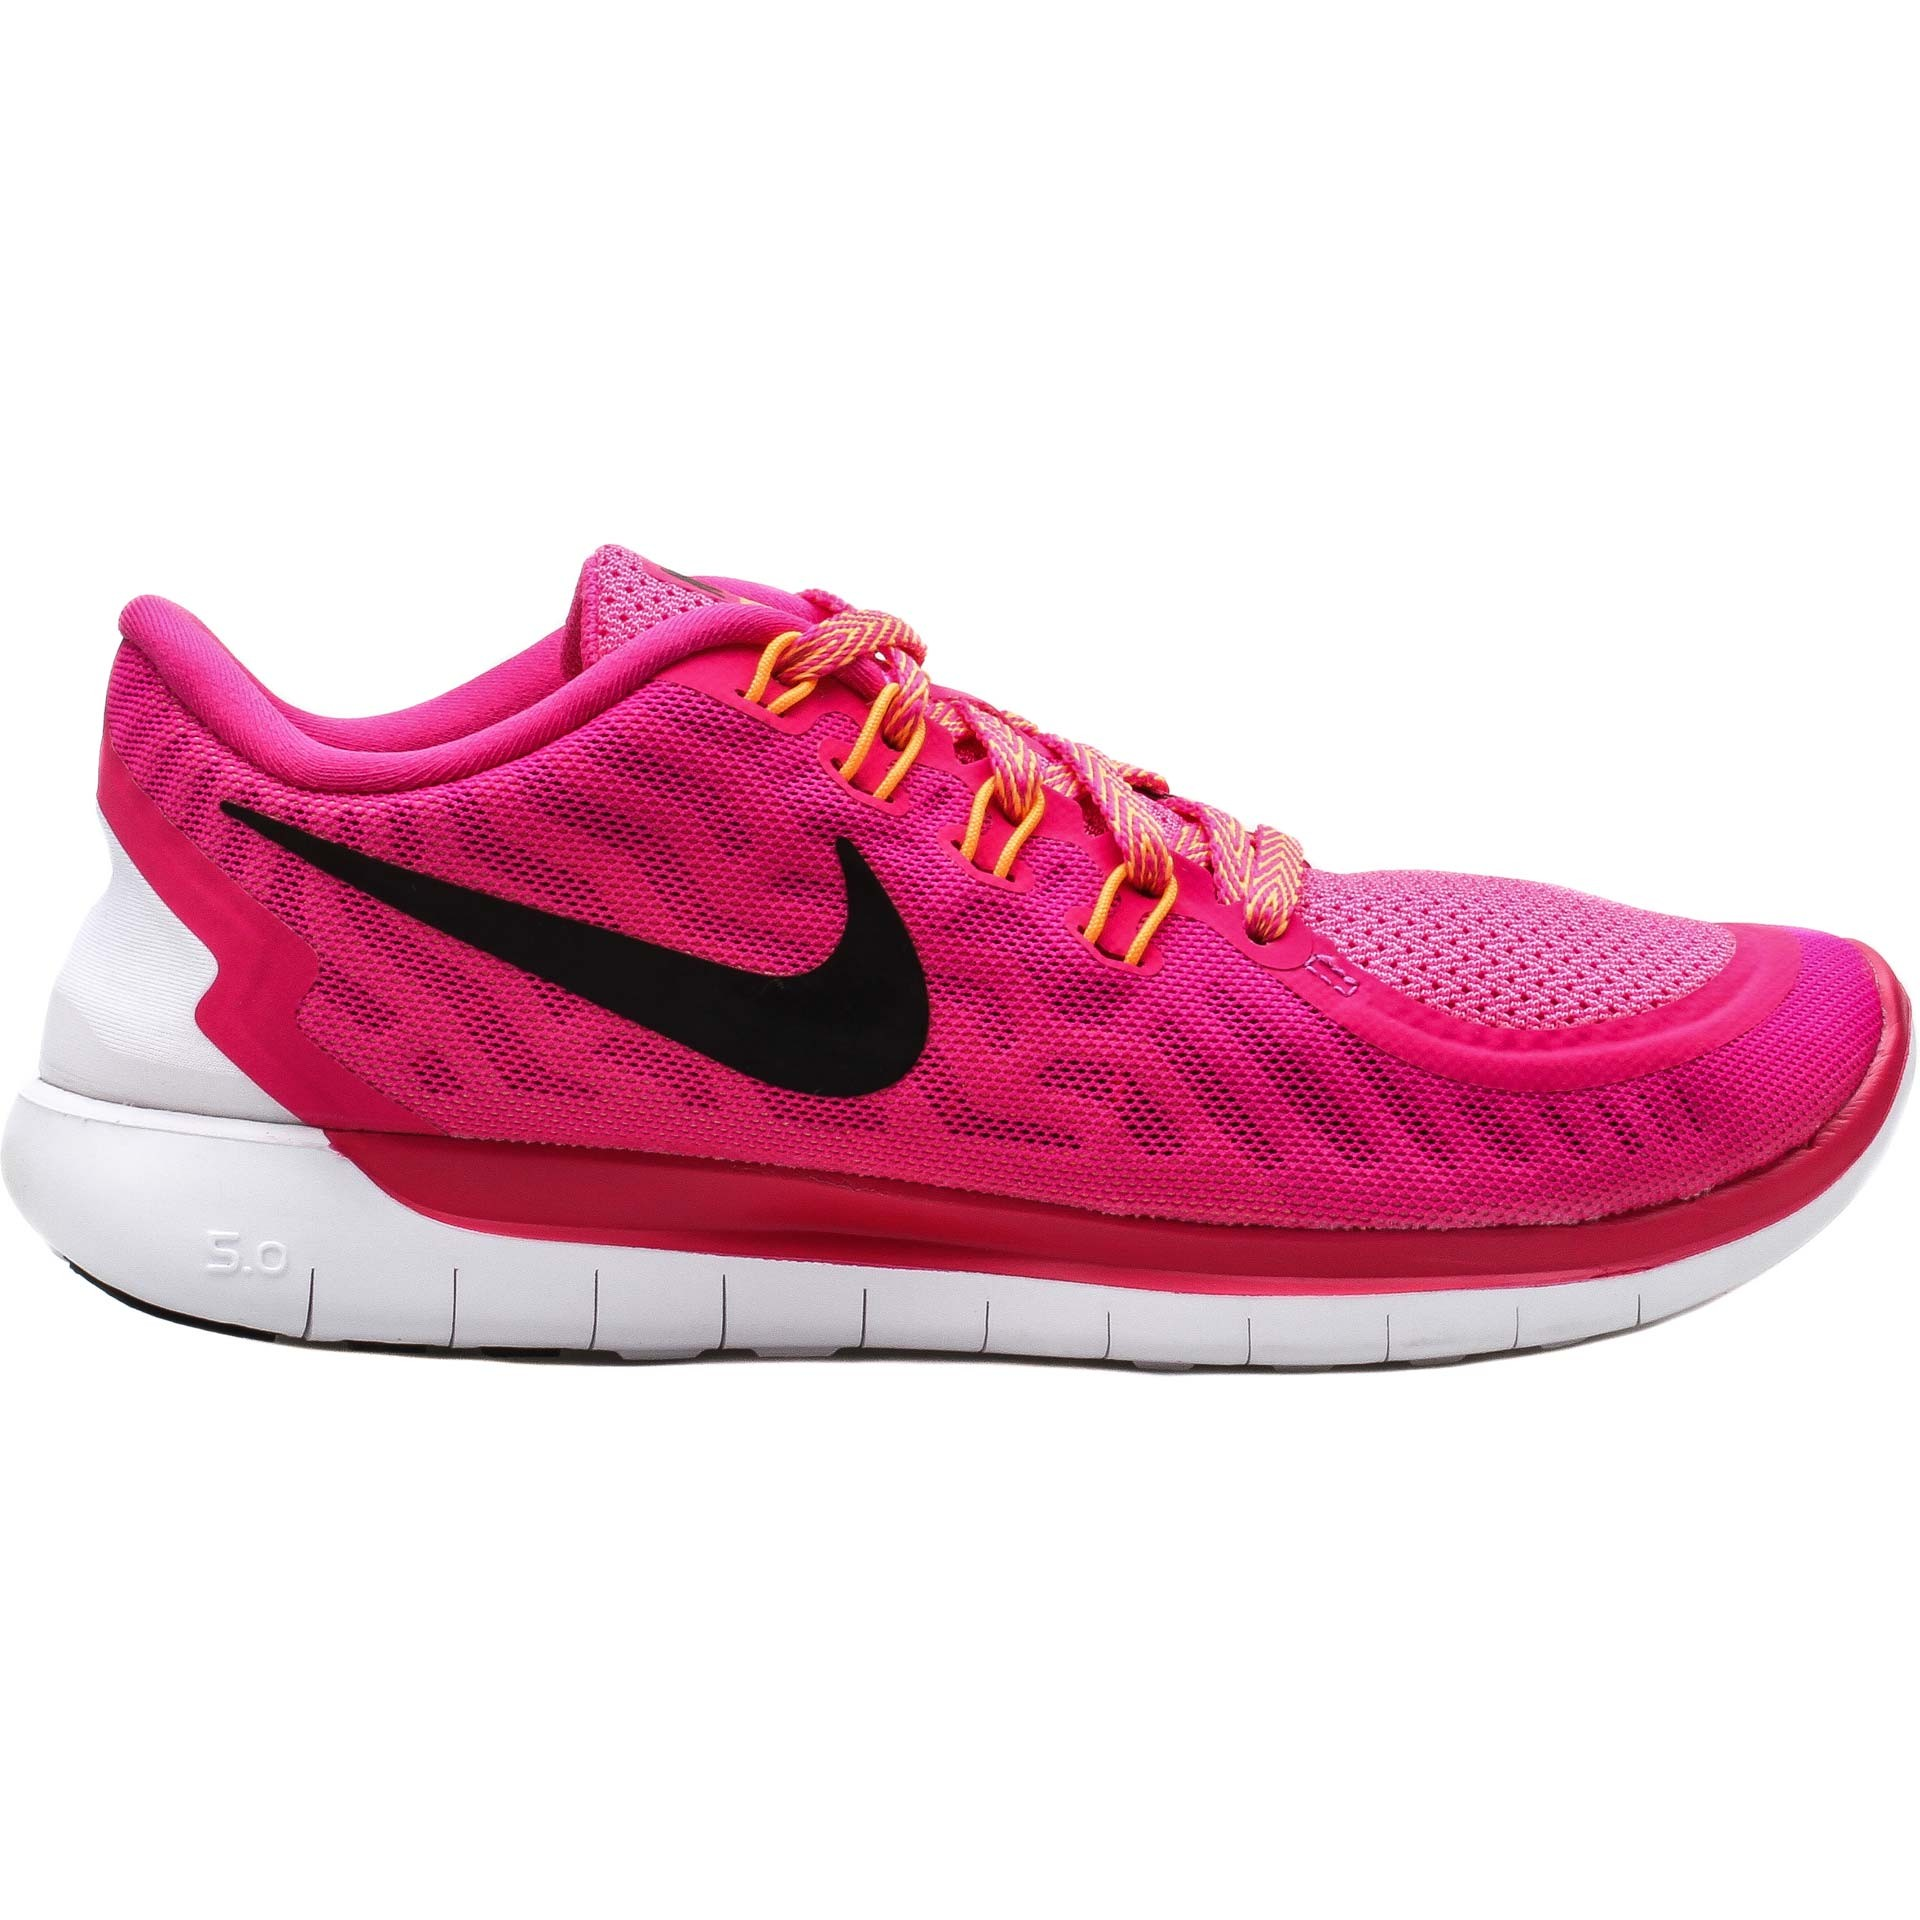 RUNNING SHOES NIKE FREE 5.0 PINK FOR WOMEN'S Running Discount